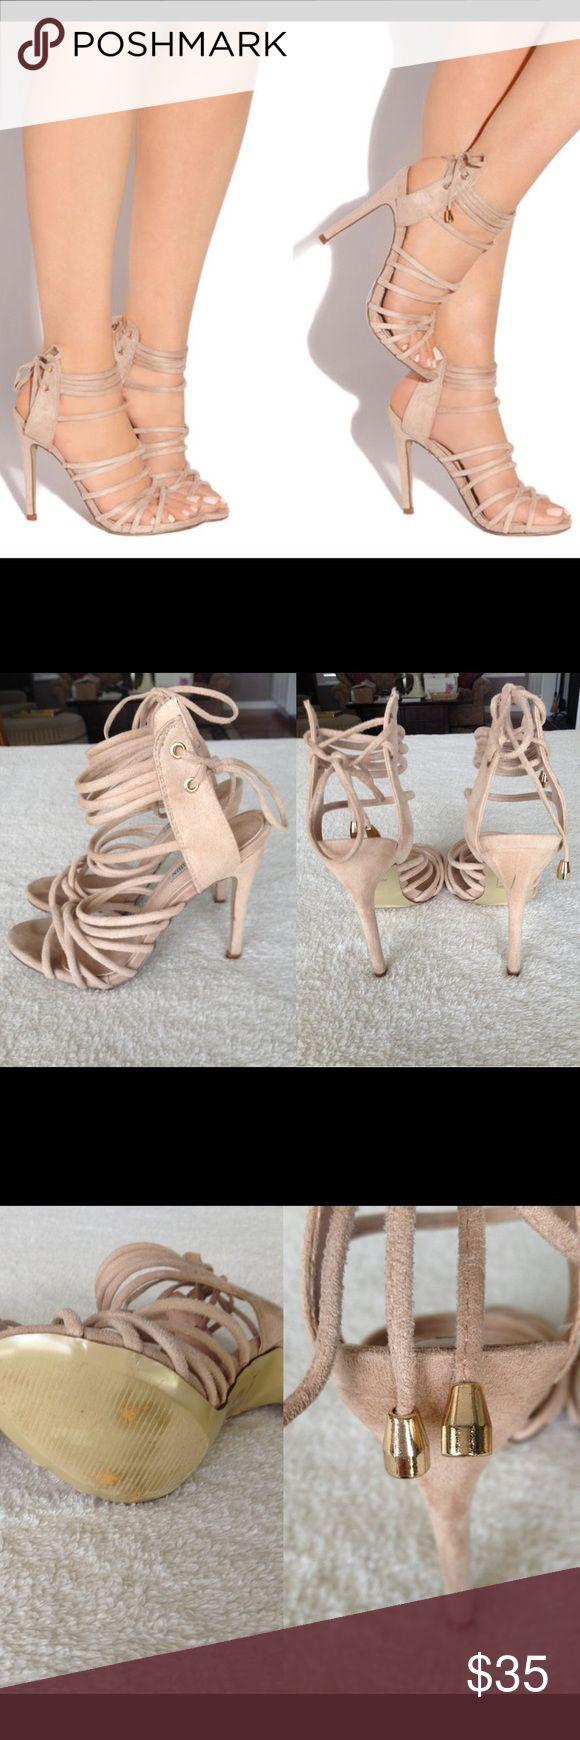 """Lola Shoetique Nude Strappy High Heel Sandals Only been tried on and worn around the house. Still in good condition, however the back of the right heel has a black scuff mark, there are slight toe imprints on the insole, and some of the fabric is scratched along the toe area. See photos for detail. Sold out on Lola Shoetique site. Faux suede, slightly padded insole. Gorgeous nude, beige color that goes with everything. Approx. 4.5"""" heel with approx. 0.5"""" platform. Cape Robbin Shoes Heels"""